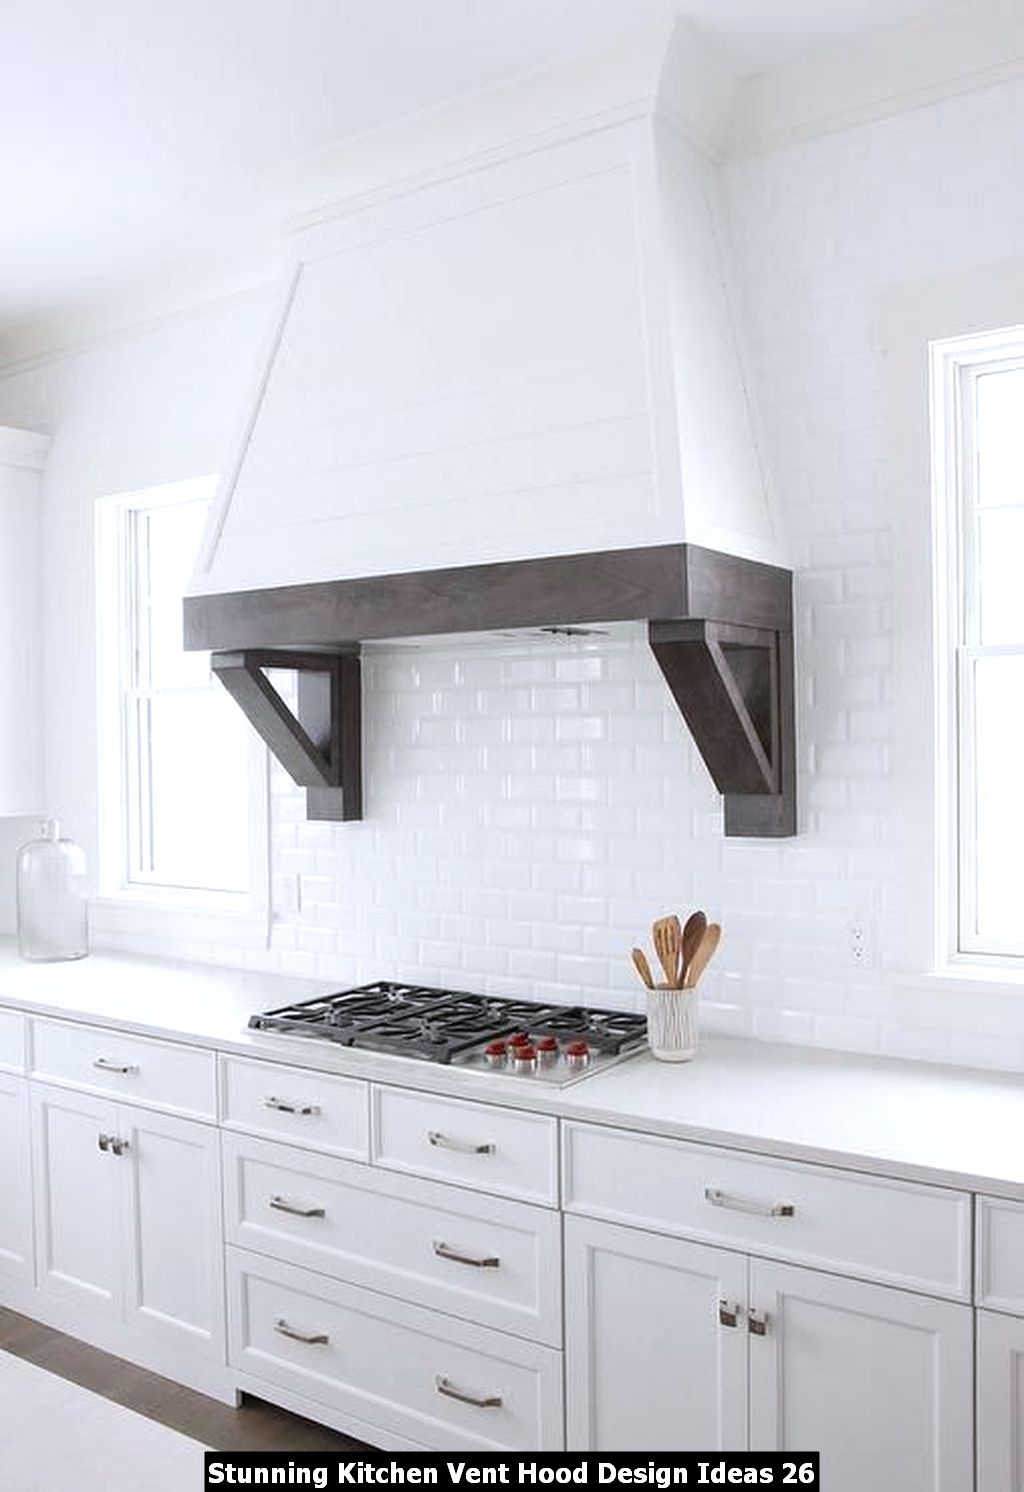 Stunning Kitchen Vent Hood Design Ideas 26